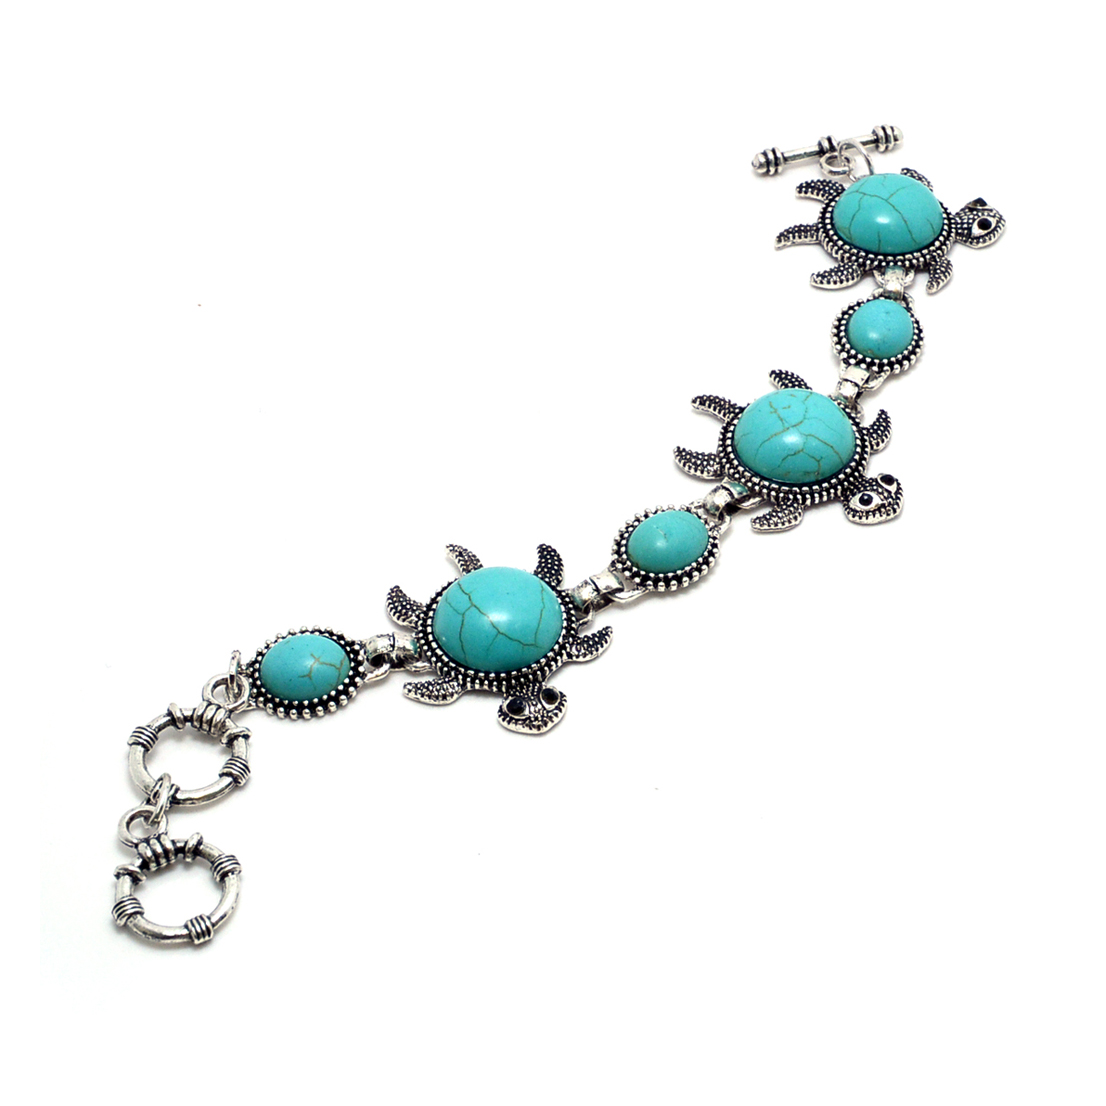 Sea Turtle Turquoise Bracelet with Toggle Closure